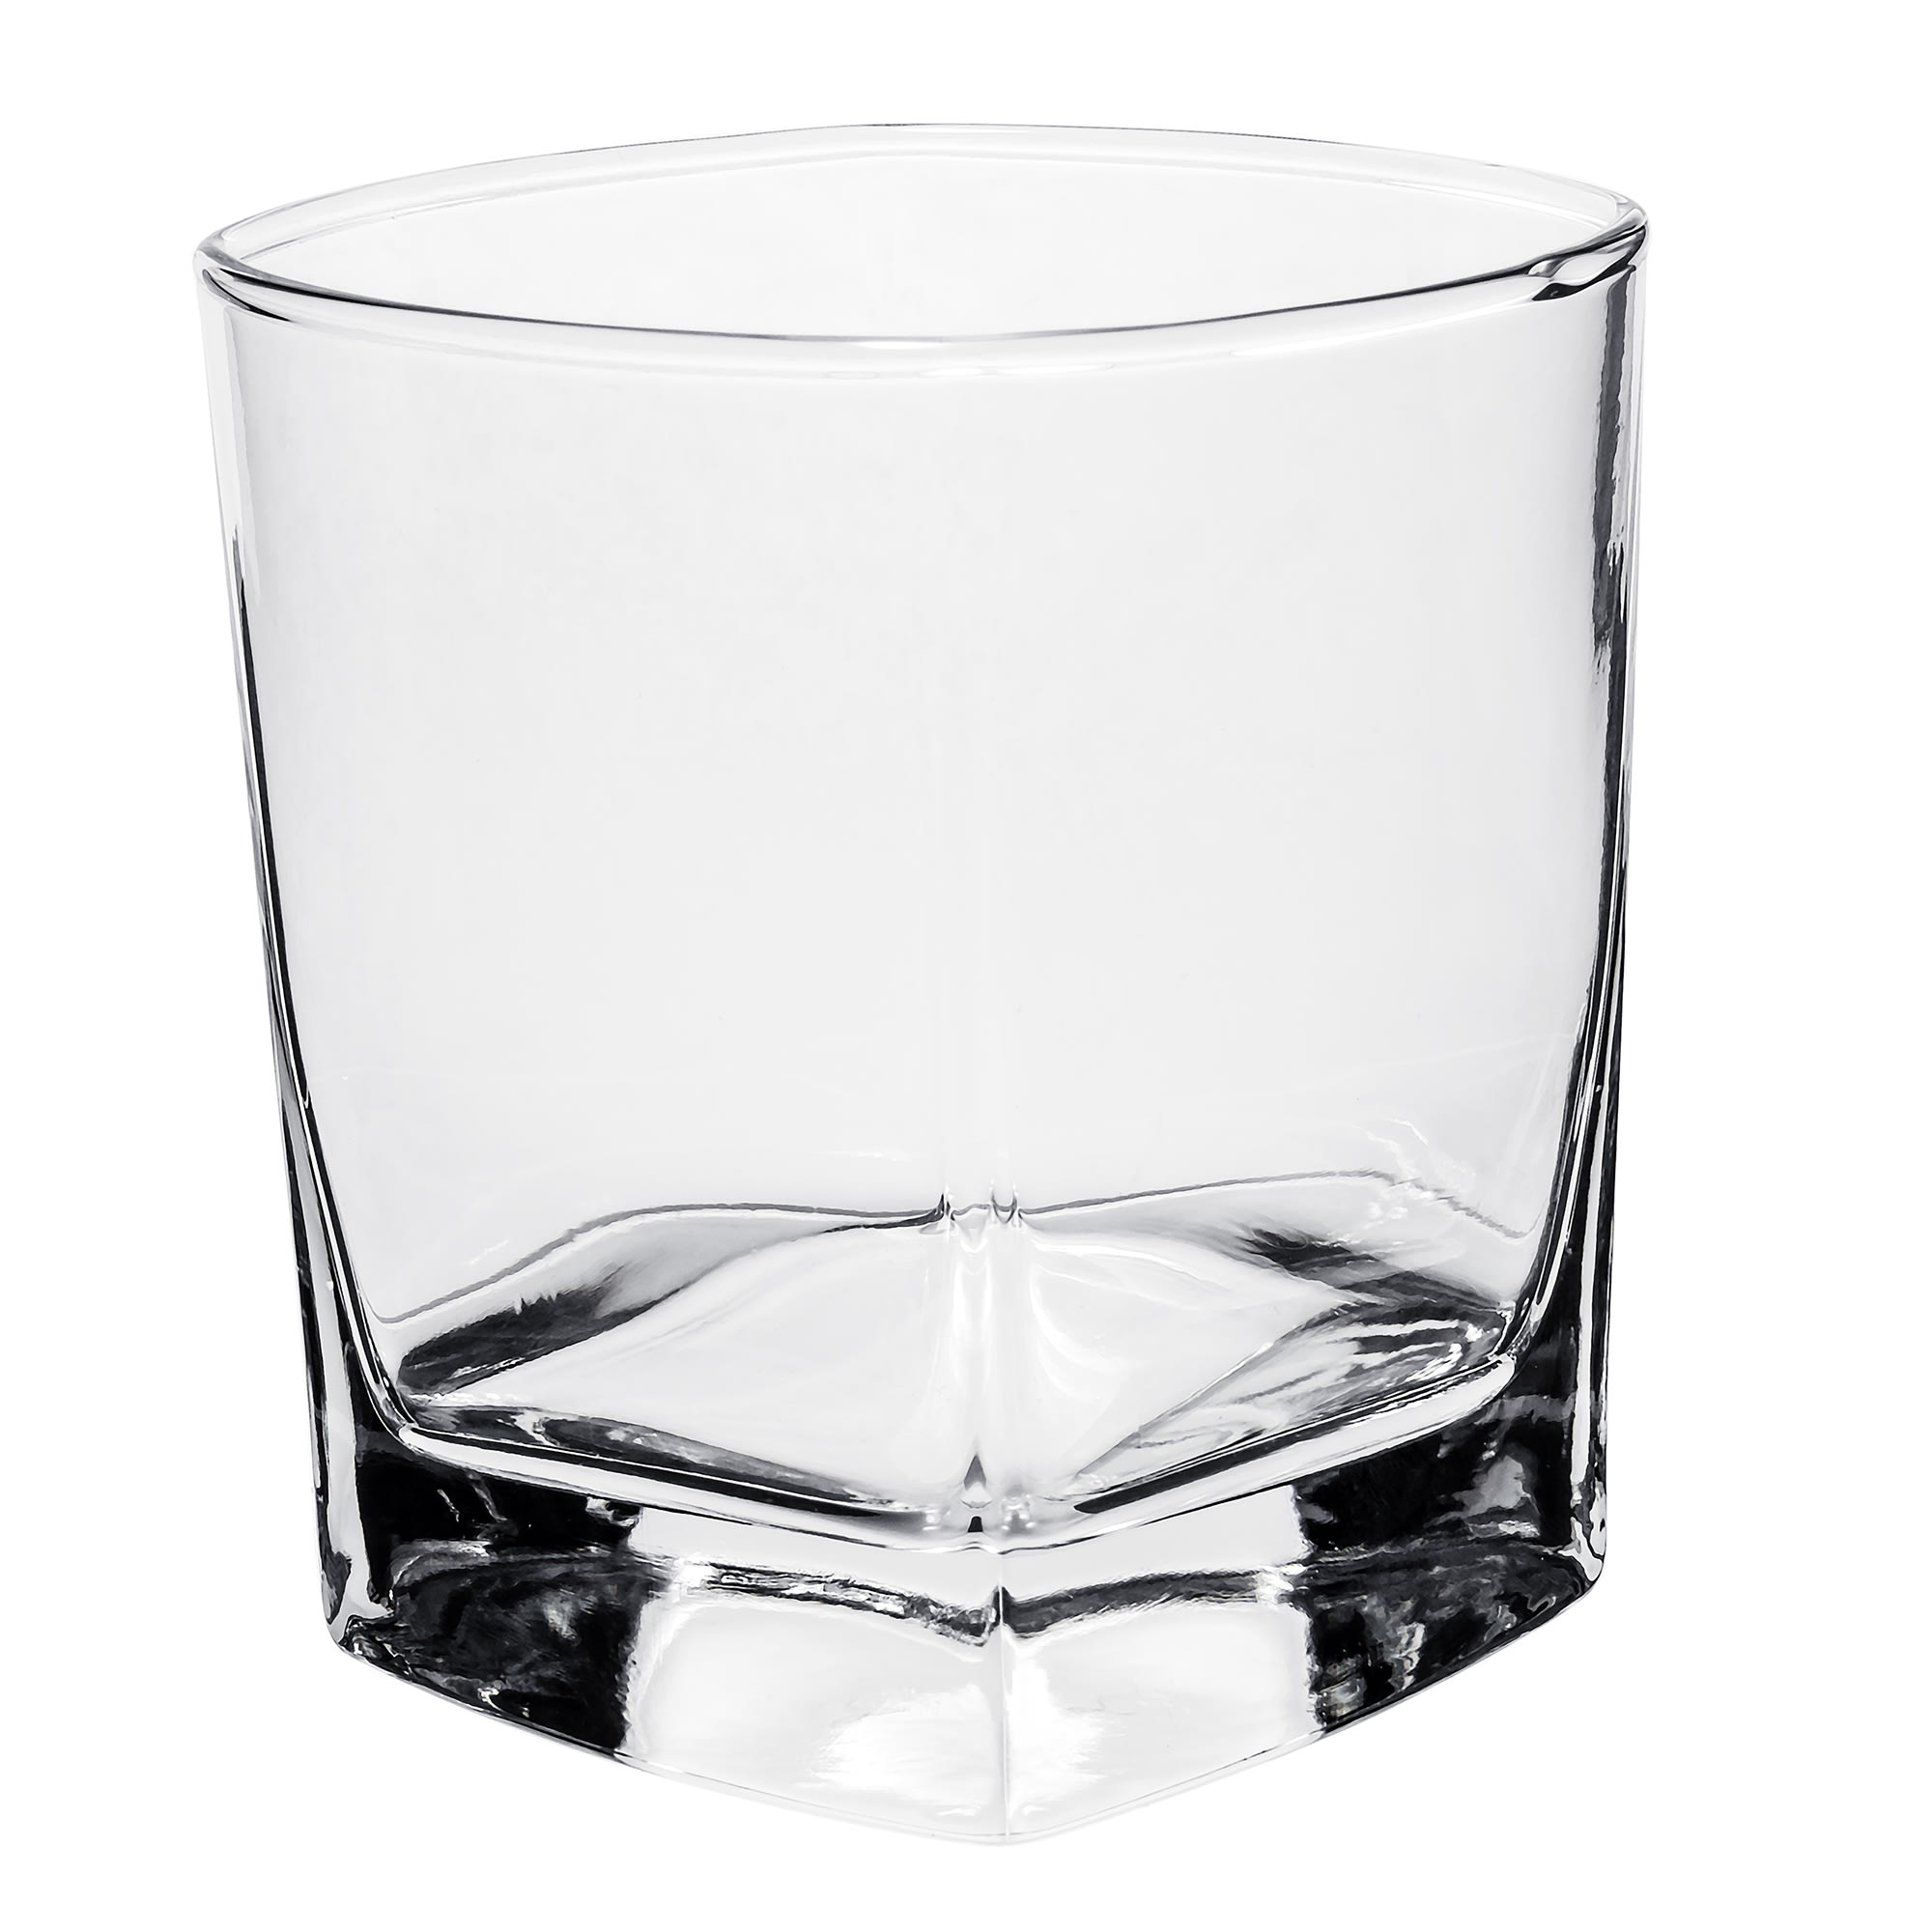 Libbey 2207 9.25 oz Double Old Fashioned Glass - Quartet, Square Base